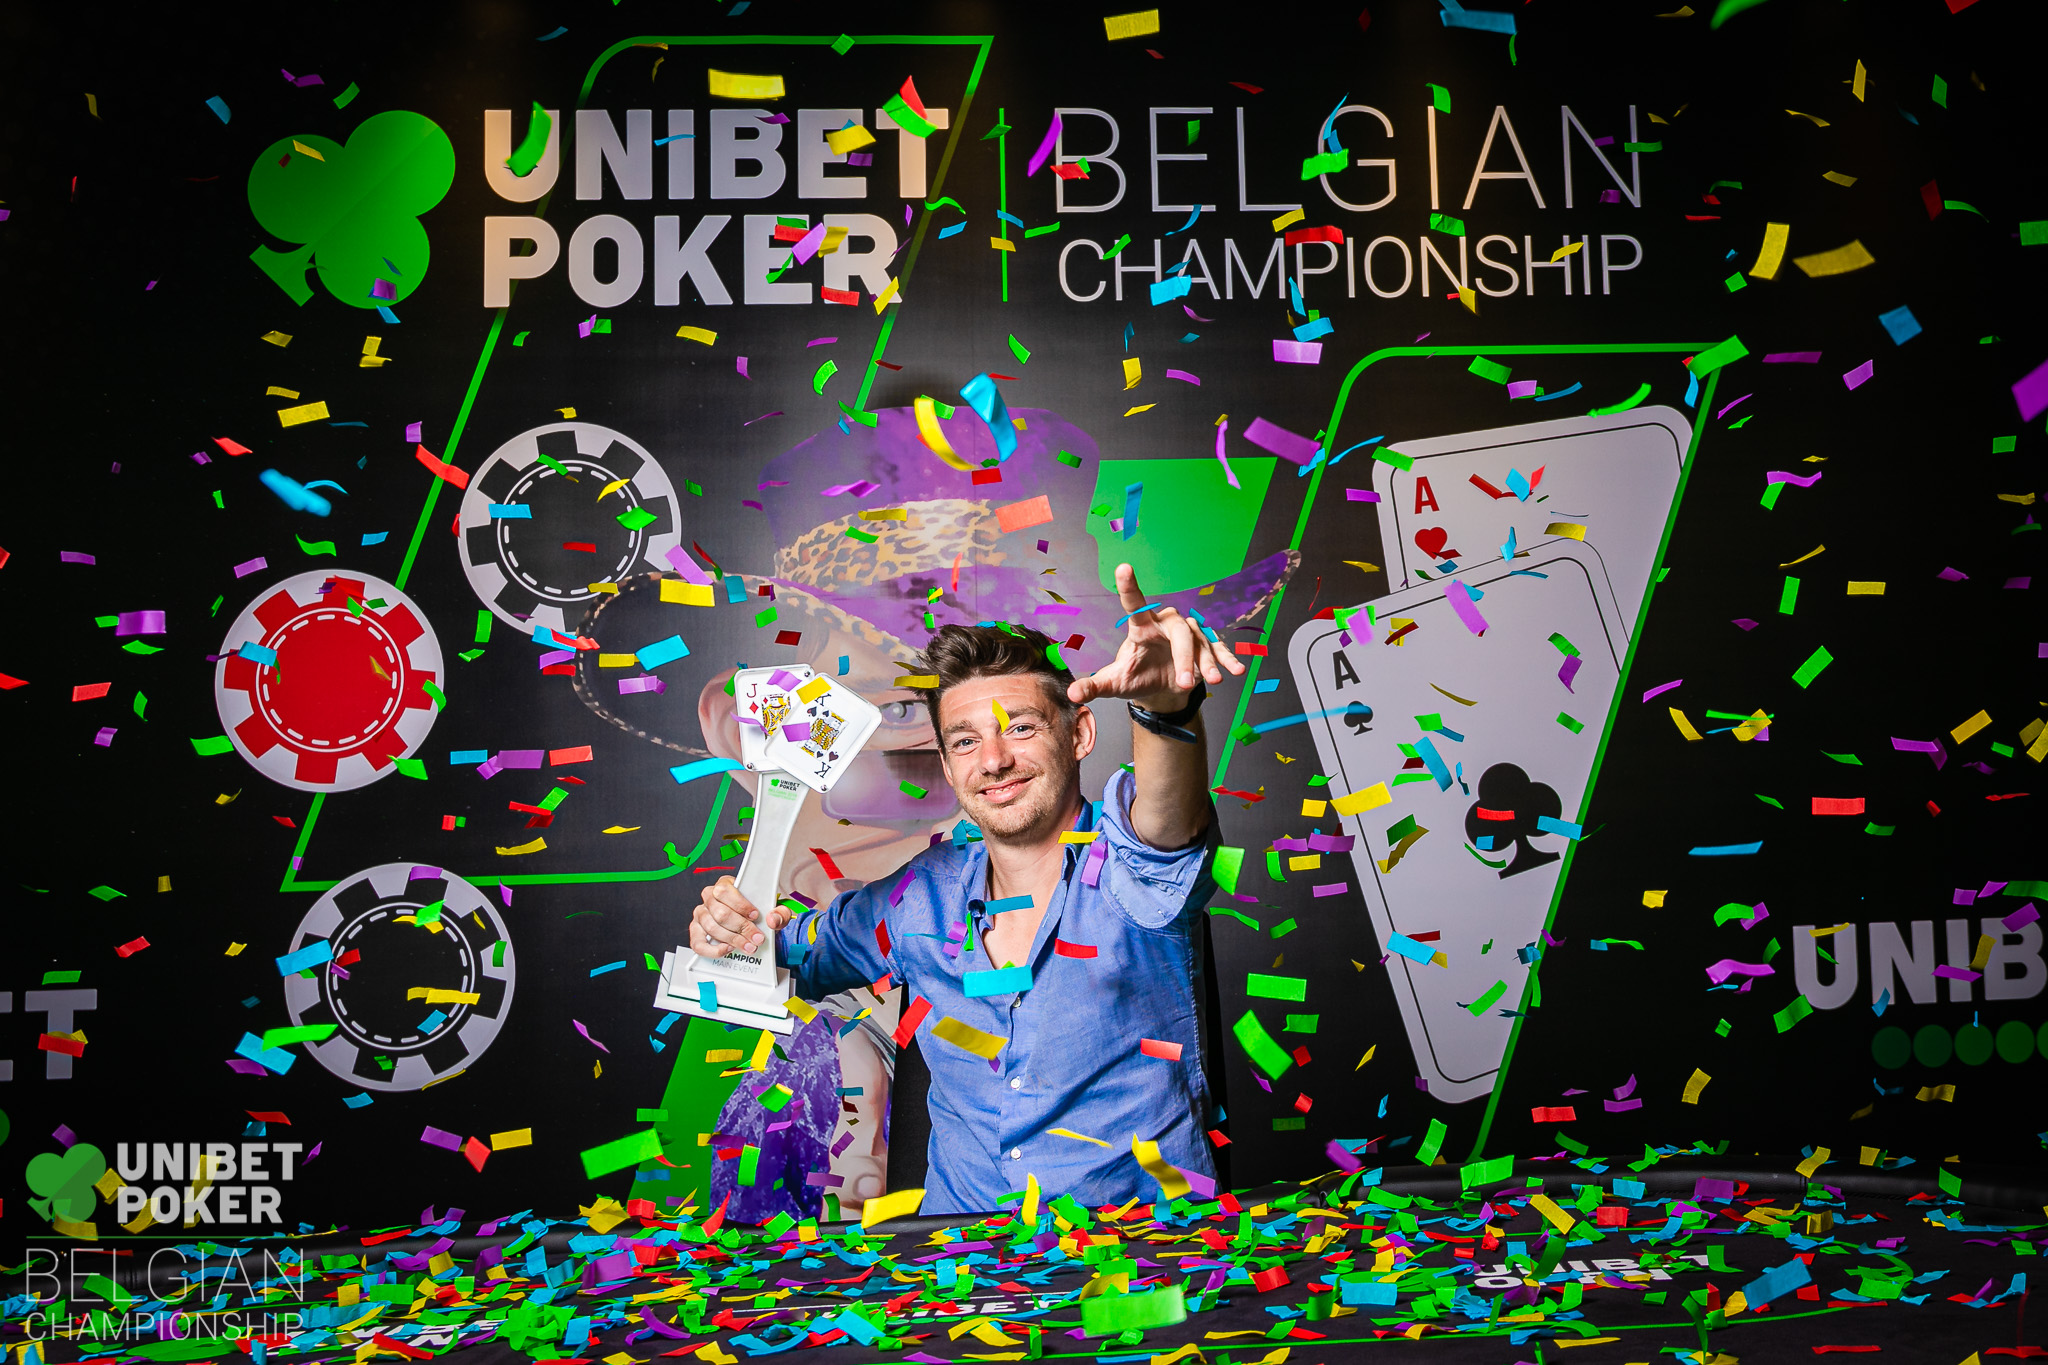 Unibet Poker Belgian Championship 2019 - Main Event (Final Day) 065 ((C) Tambet Kask 2019)